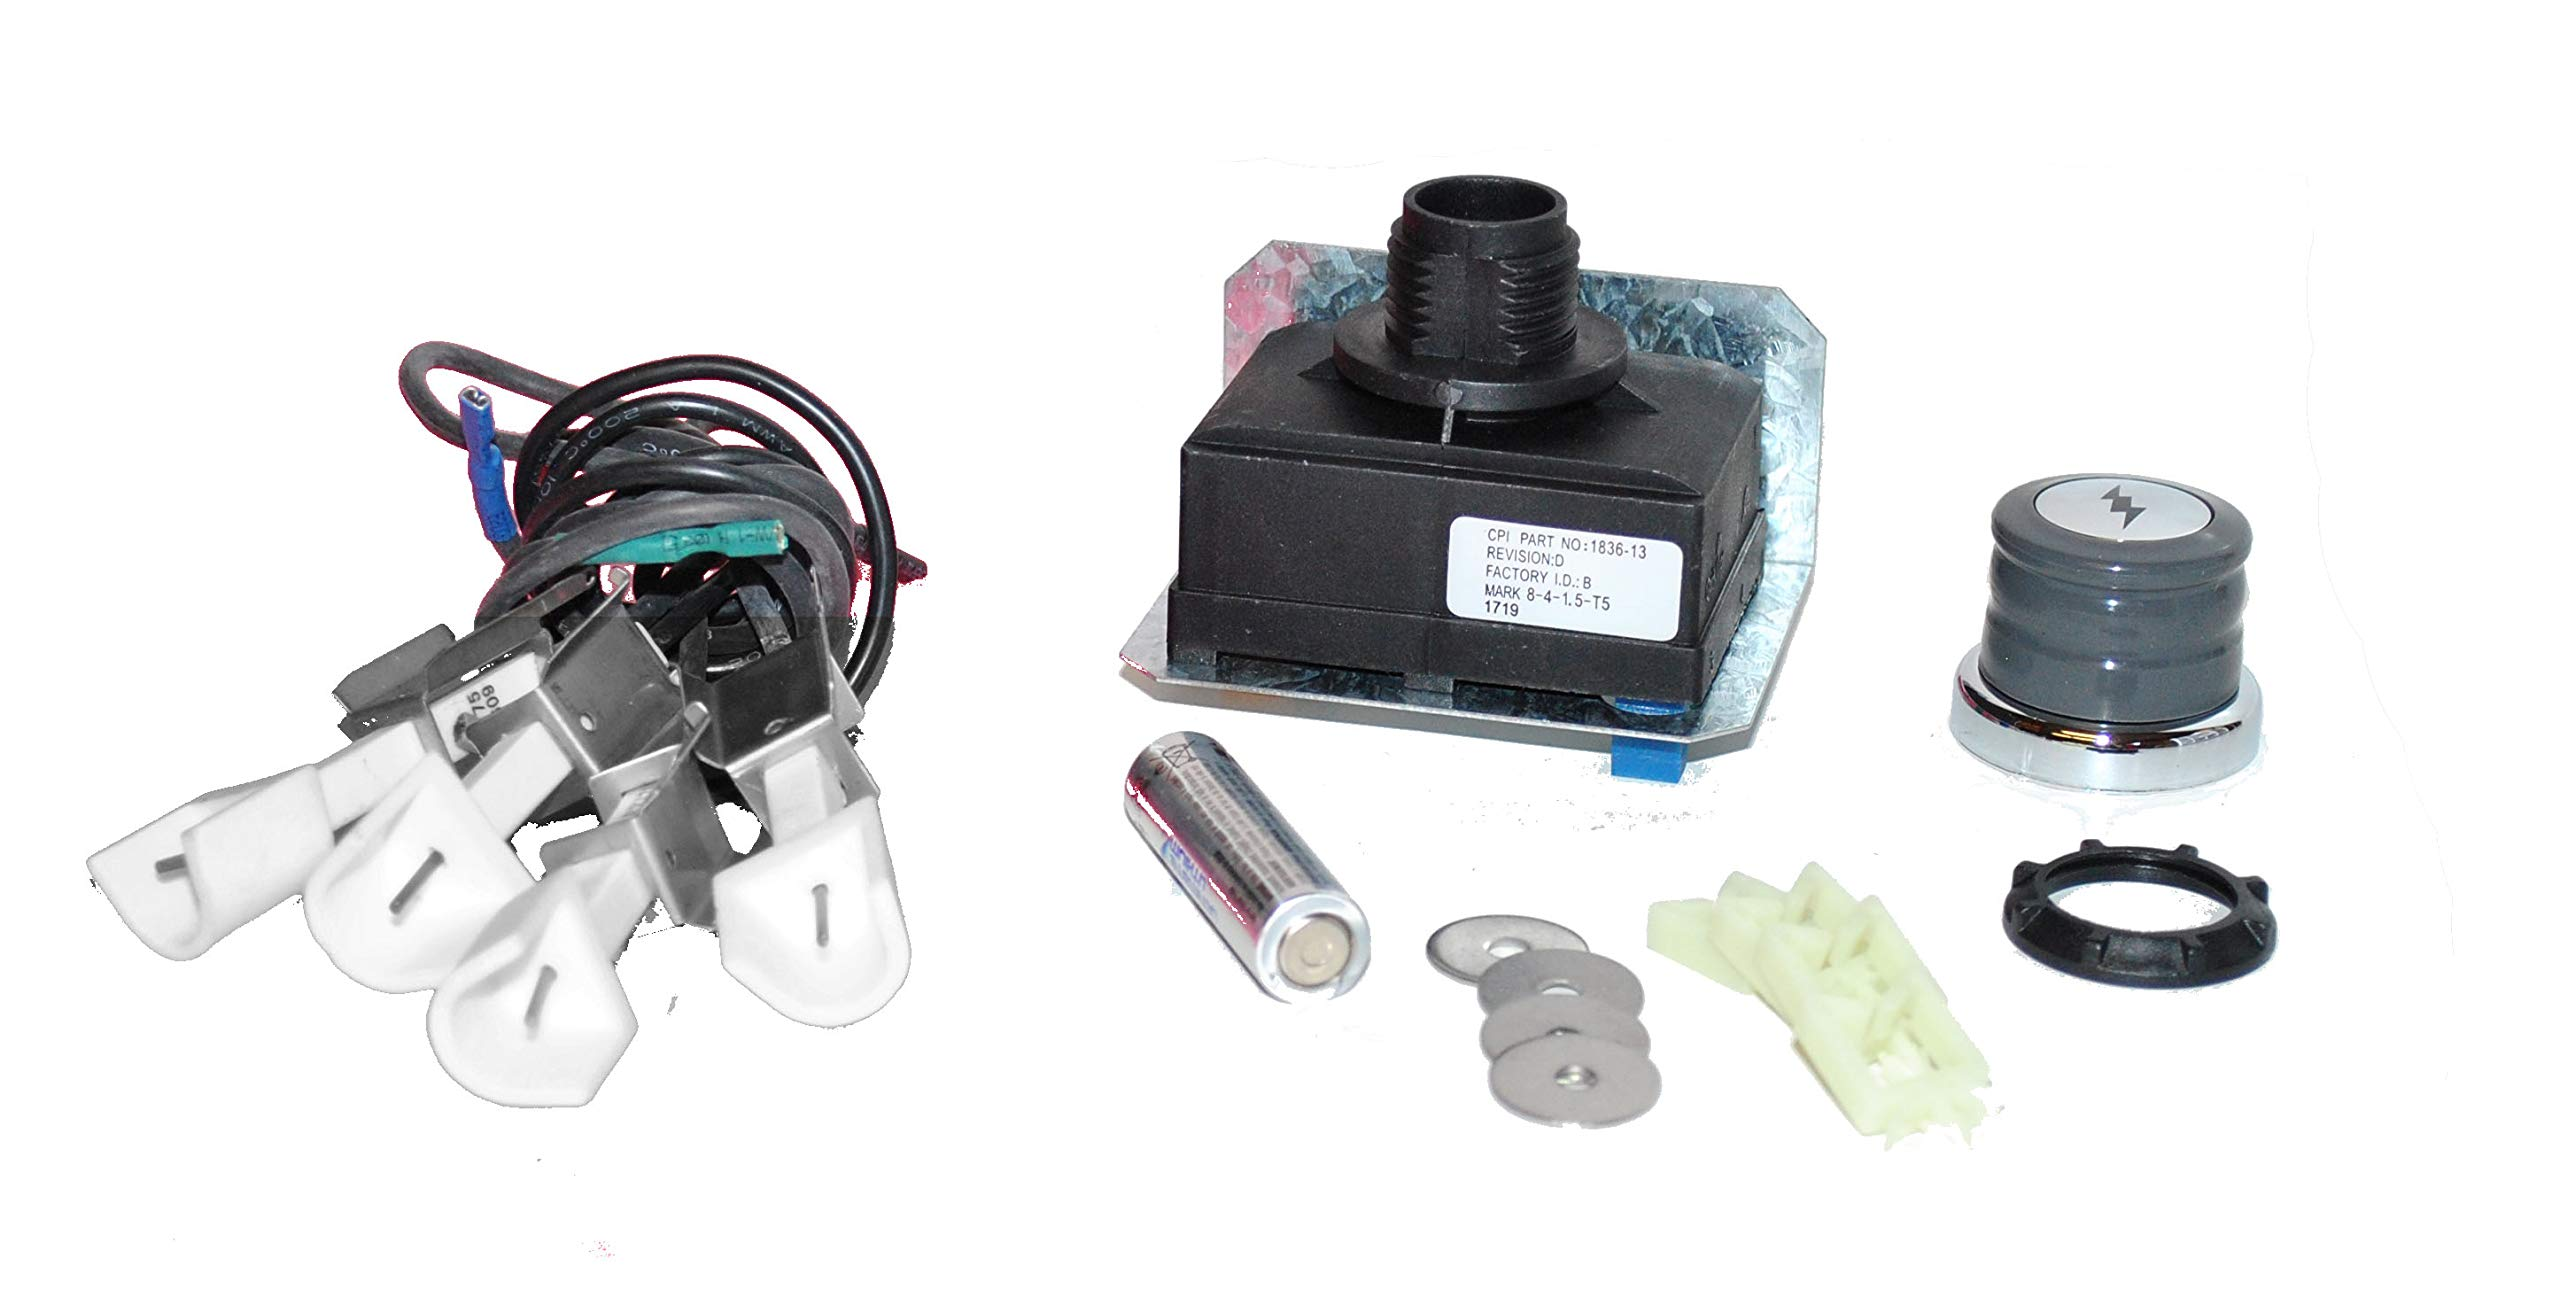 Weber 65946 Genesis 330 Igniter Kit 2011 & Newer, Front Mounted Control Panel by Weber (Image #1)